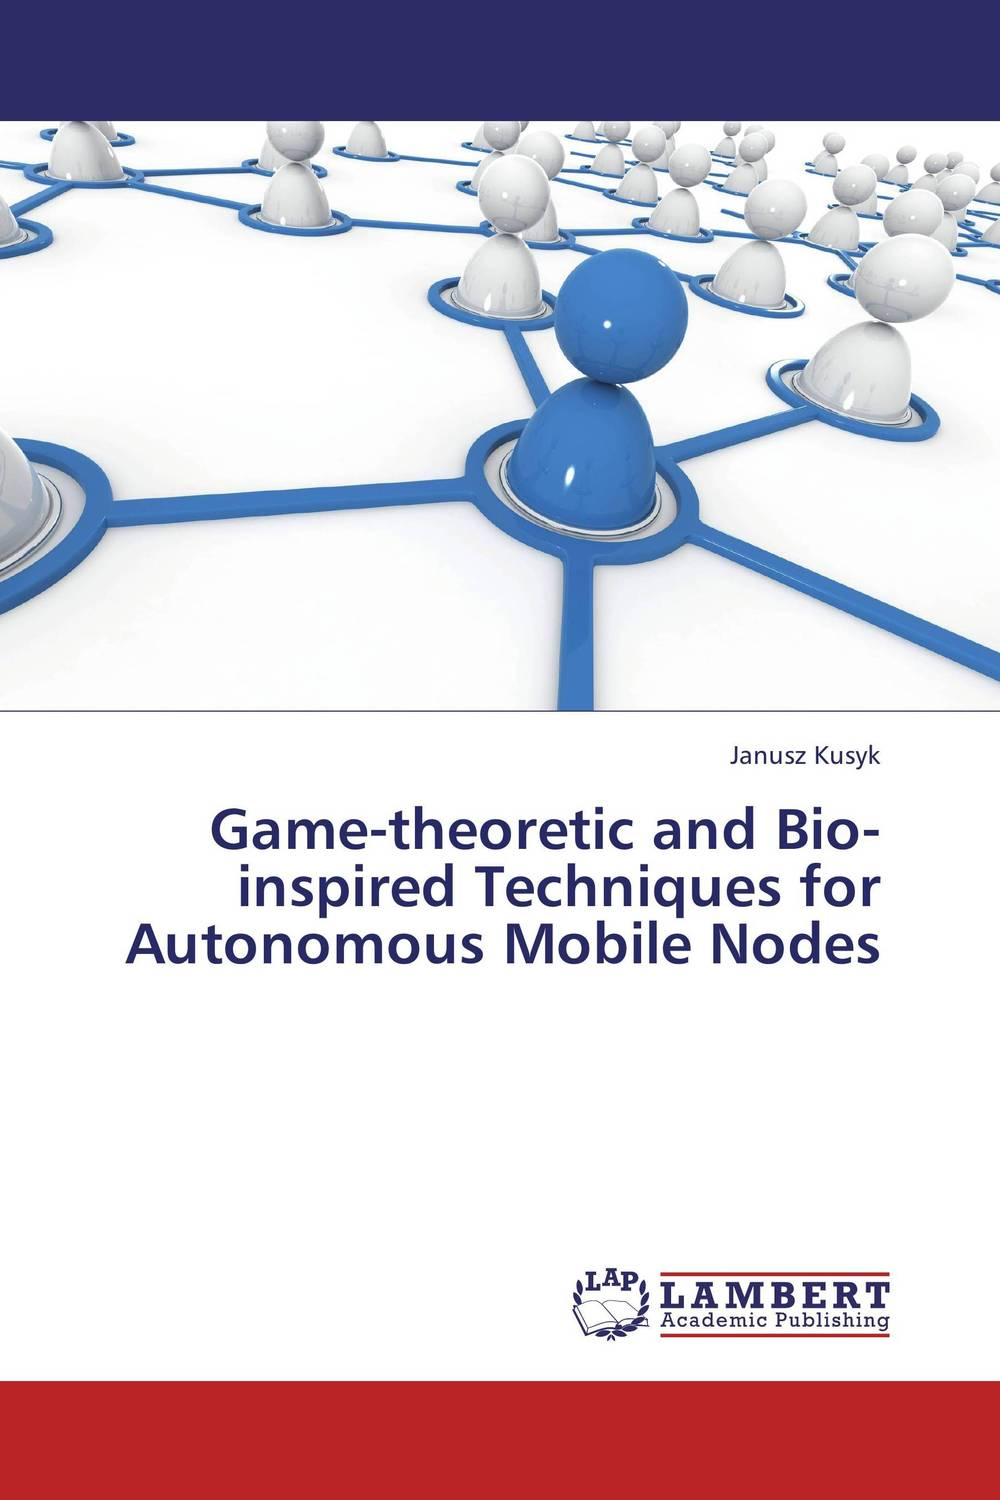 Game-theoretic and Bio-inspired Techniques for Autonomous Mobile Nodes bio inspired methods for business process mining and optimization